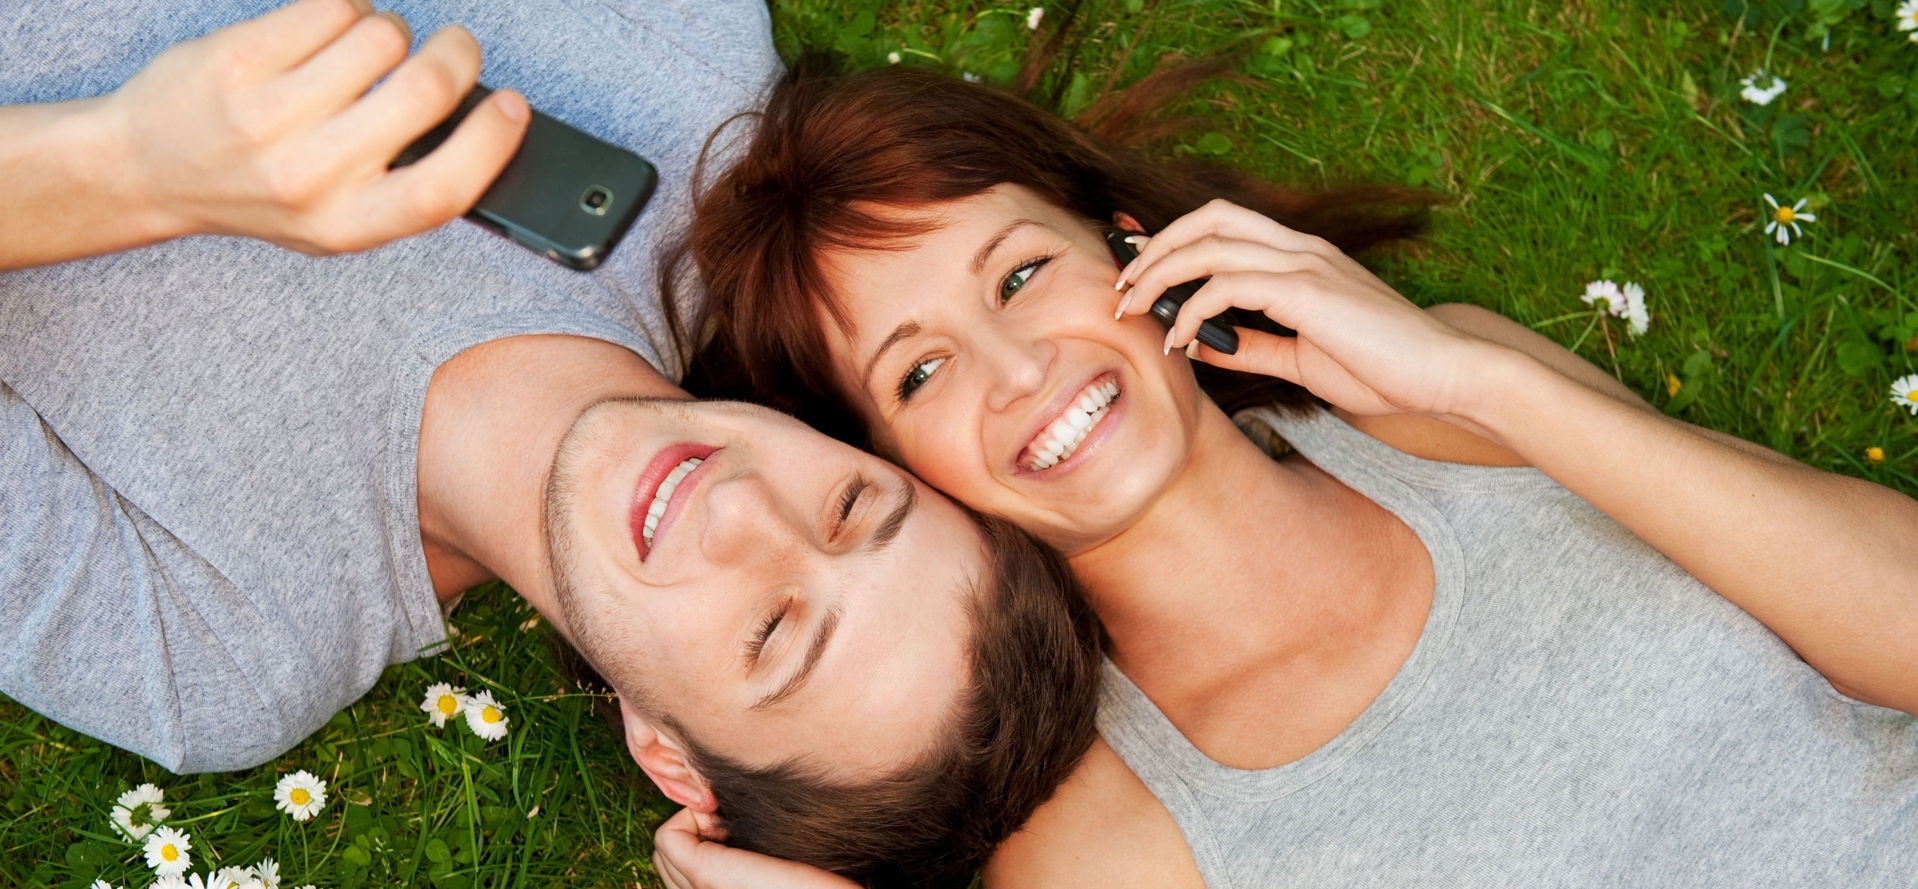 Find the right guy with telephone dating